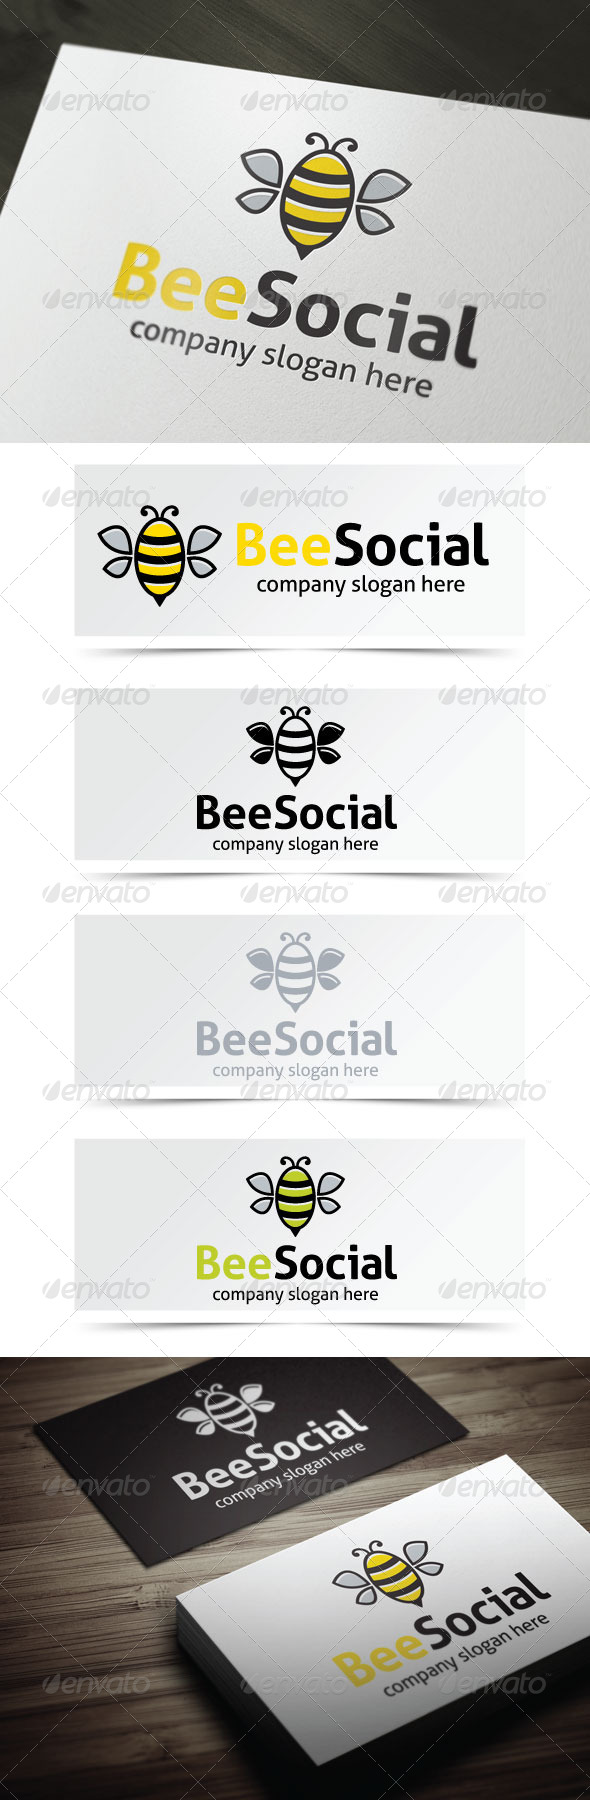 GraphicRiver Bee Social 4711070